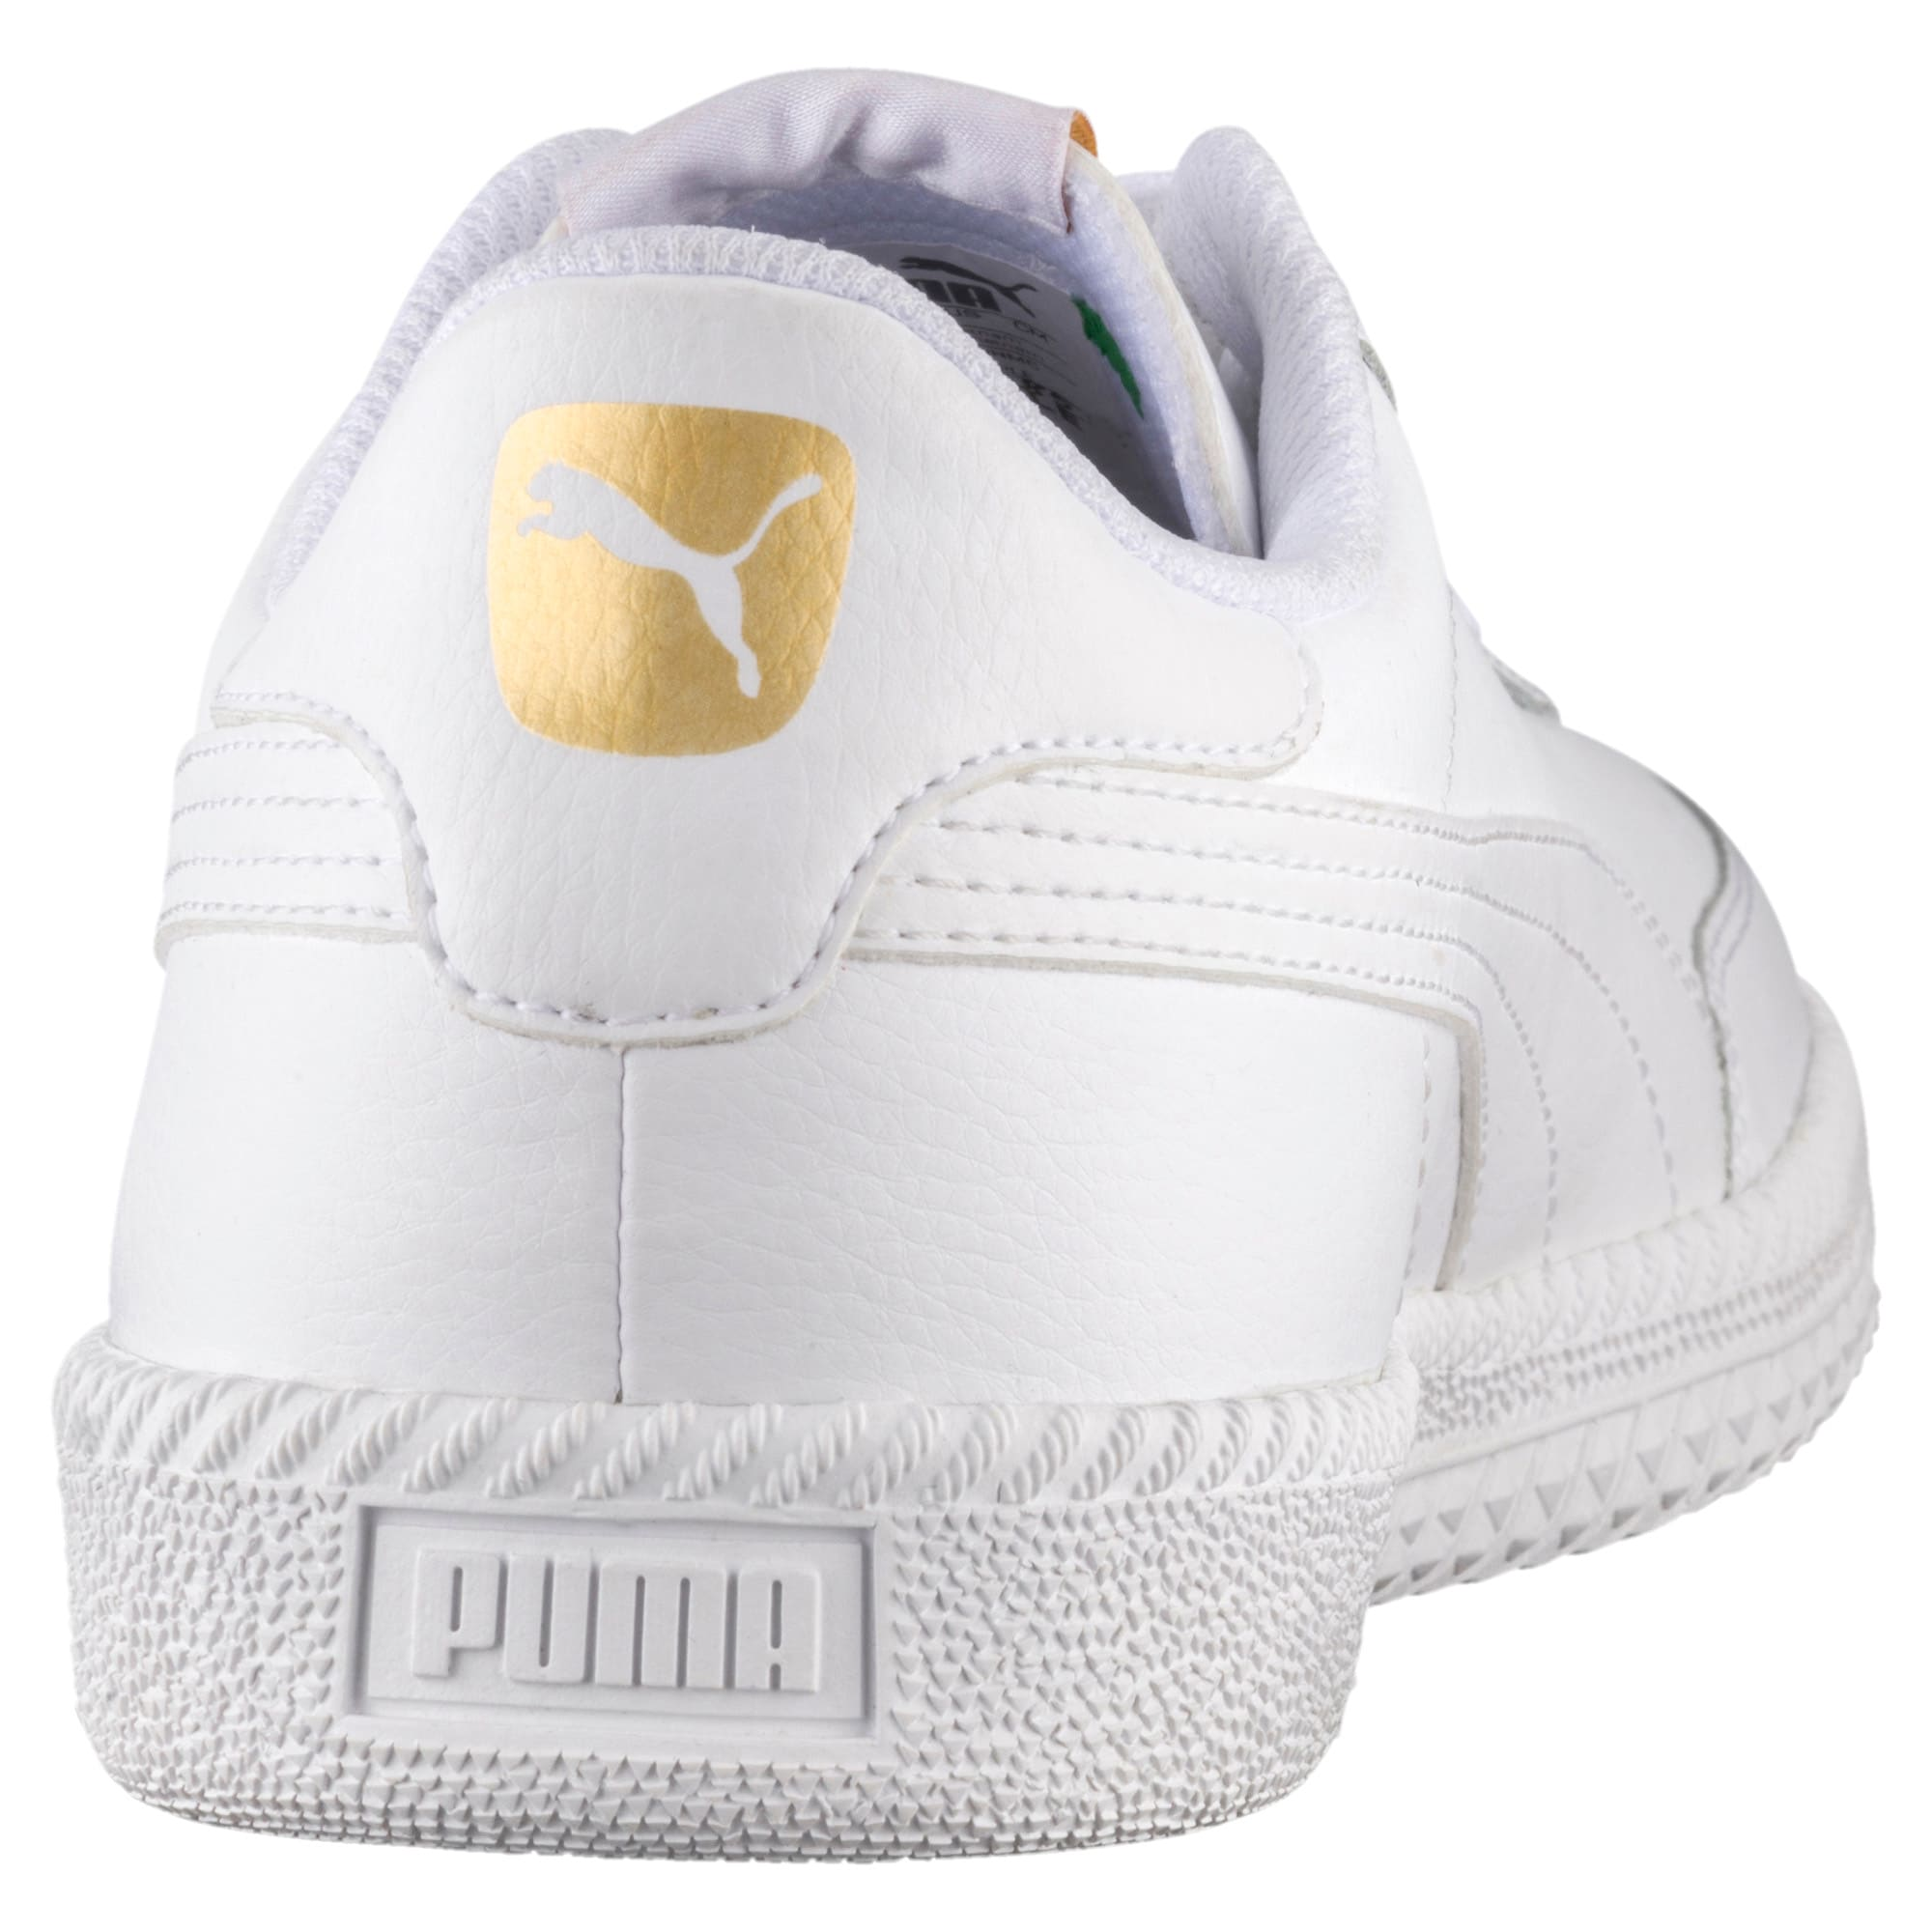 Thumbnail 3 of Astro Cup Leather Trainers, Puma White-Puma White, medium-IND